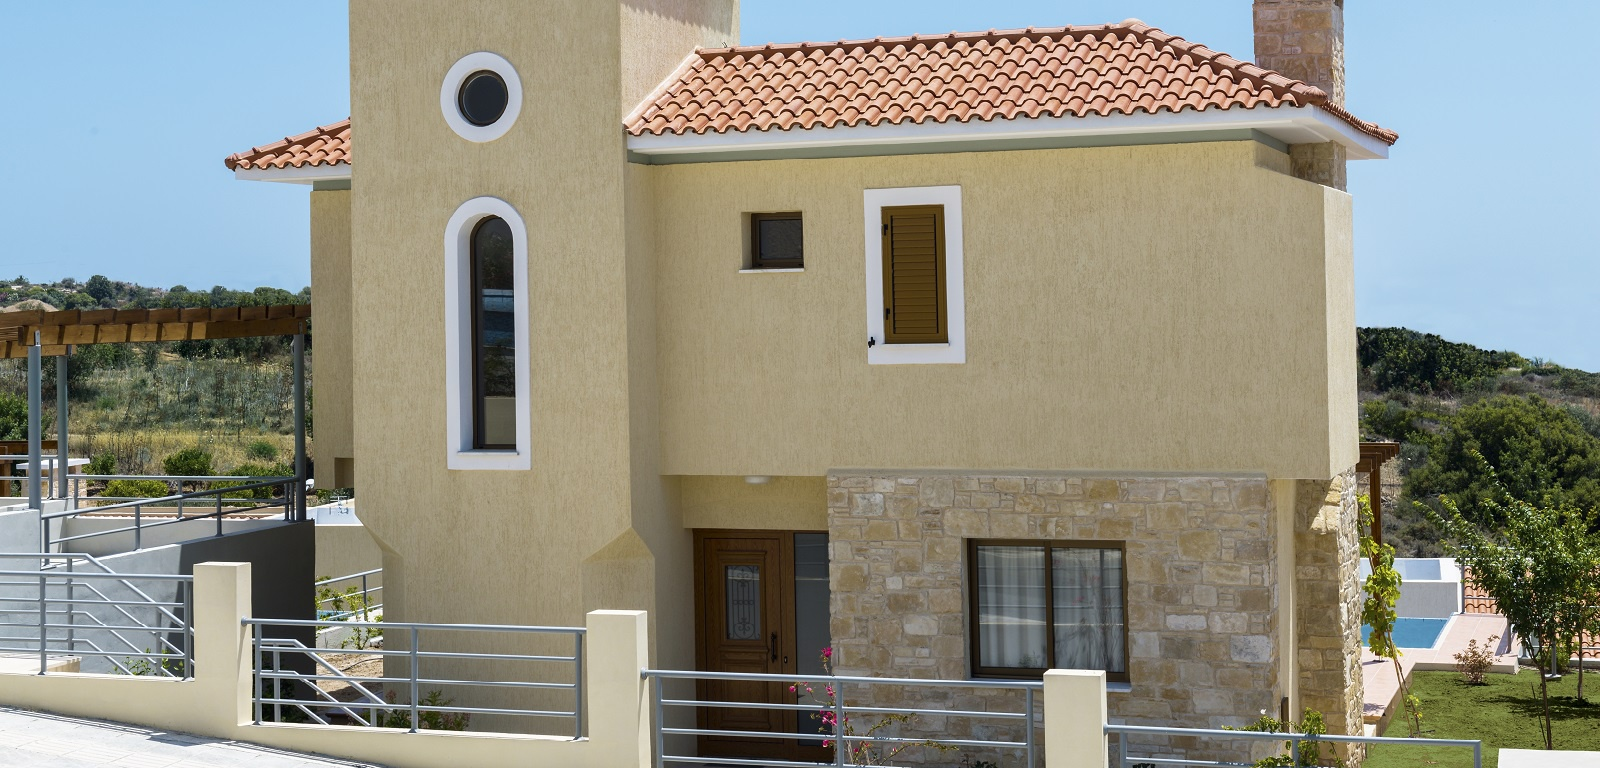 Willa 134 m² w Pafos